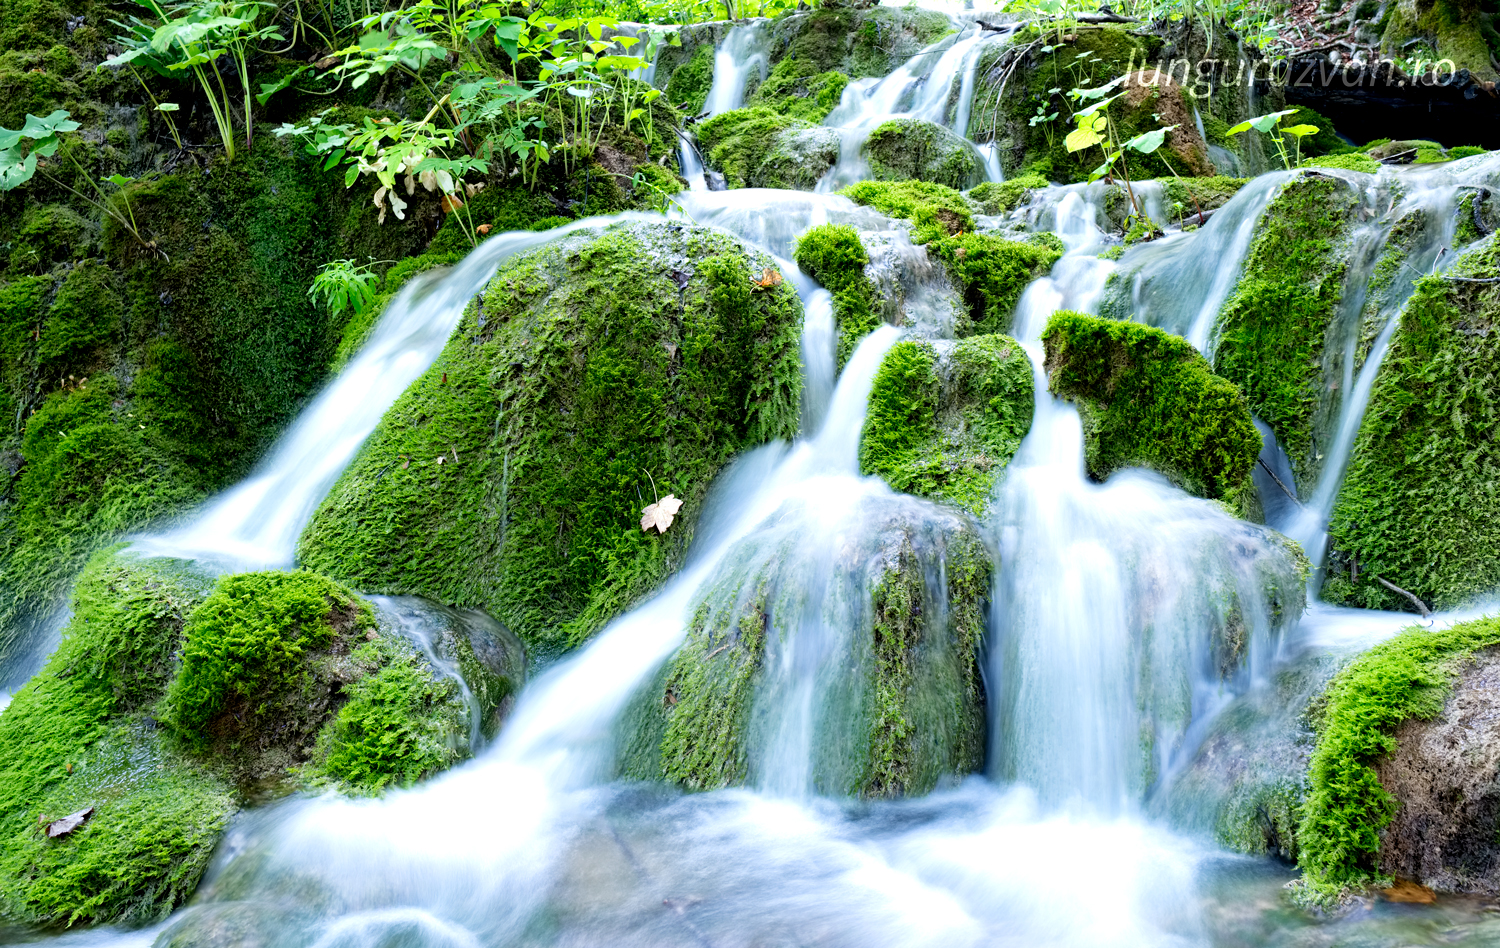 Flowing Over Luscious Green, soft waterfall over rich green terrain